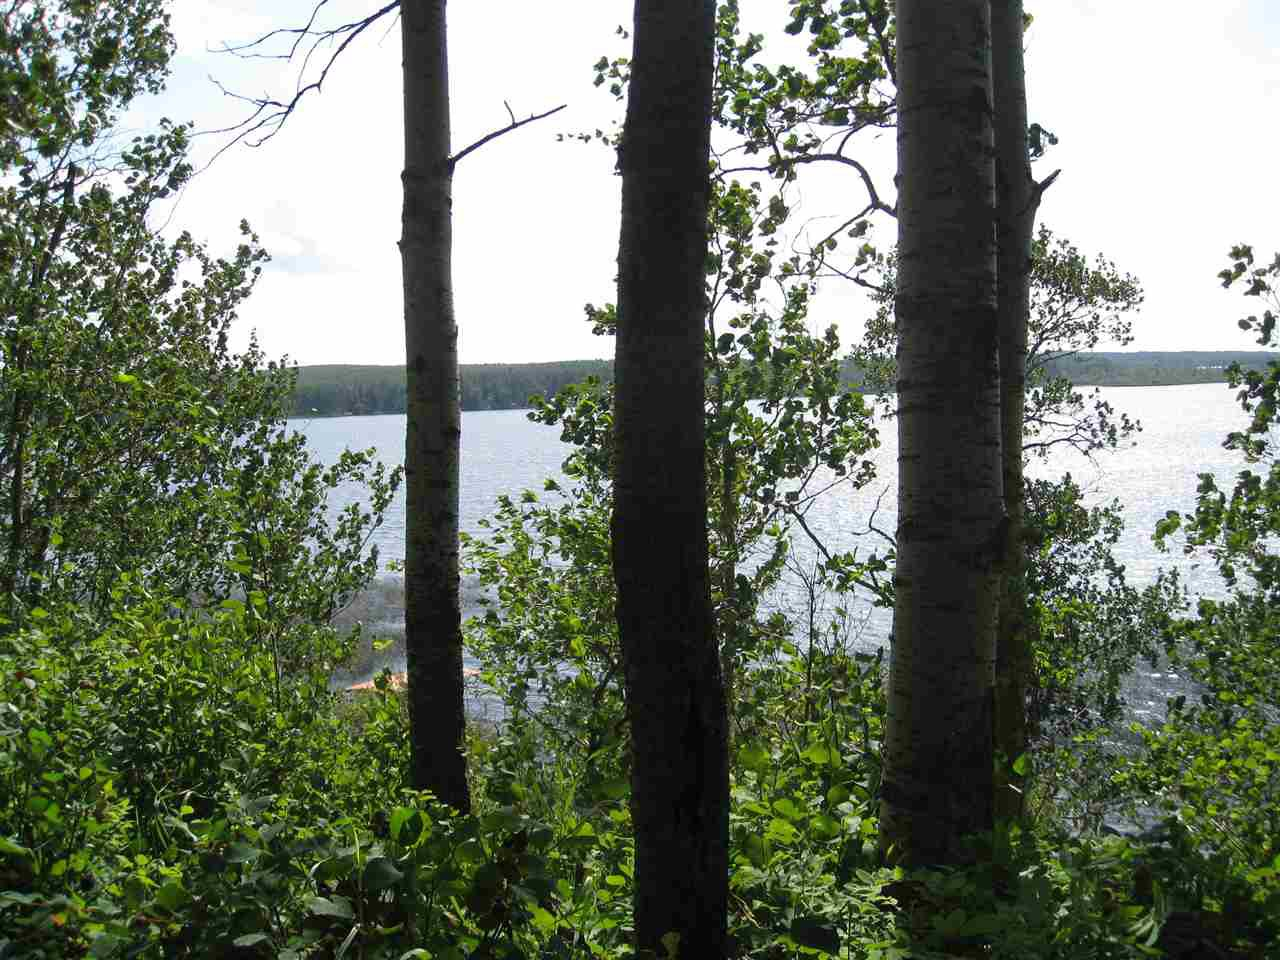 Photo 25: Photos: 5, 1319 Twp Rd 550: Rural Lac Ste. Anne County House for sale : MLS®# E4167720